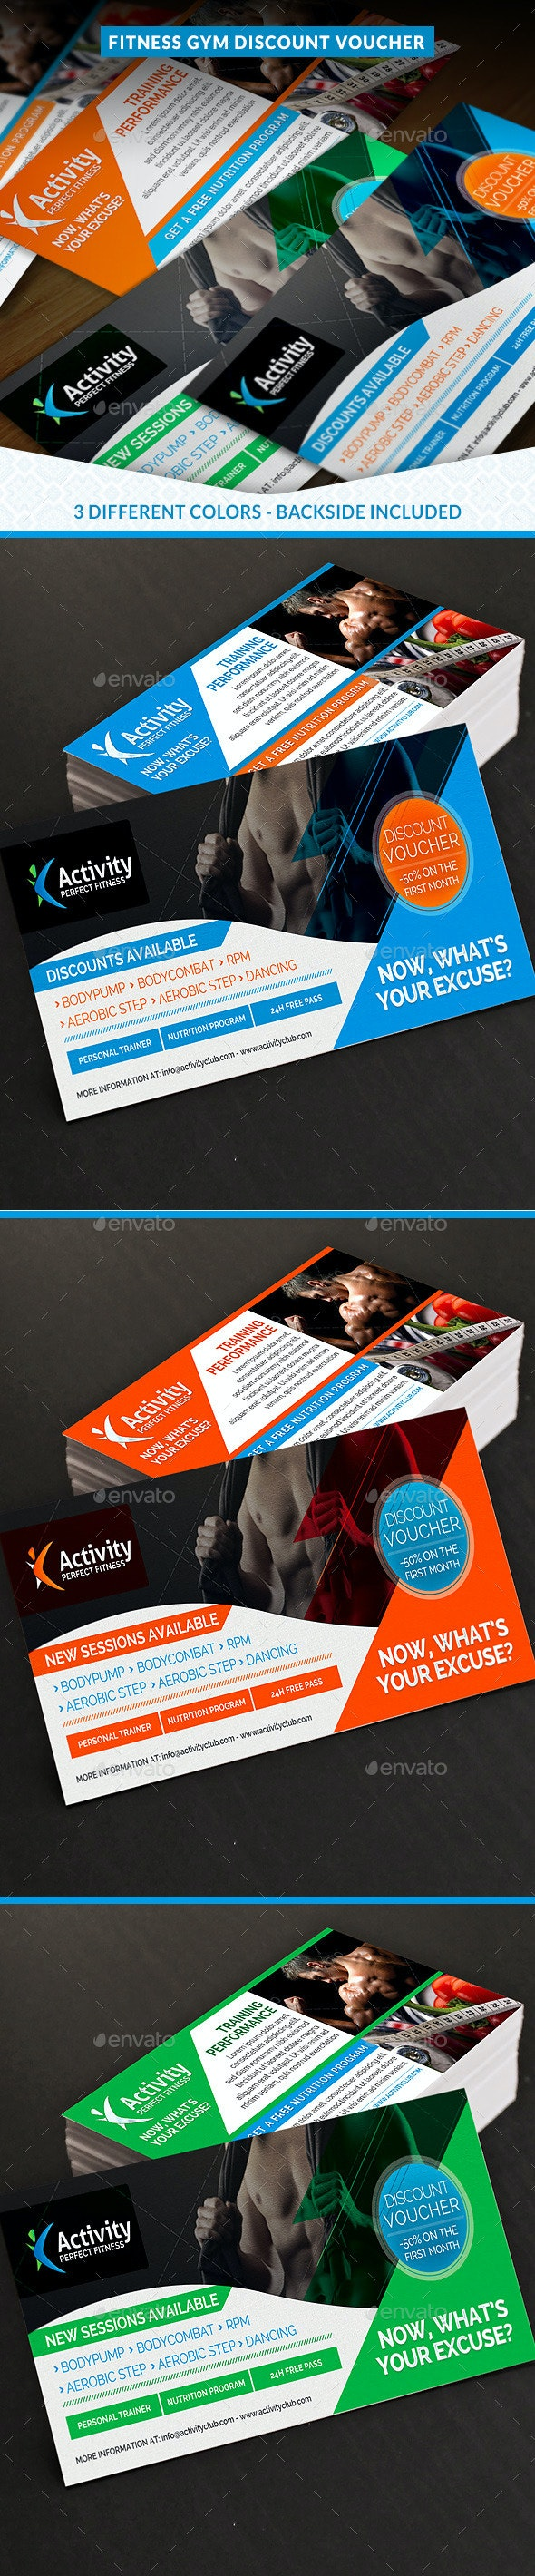 Fitness and Gym Discount Voucher - Cards & Invites Print Templates